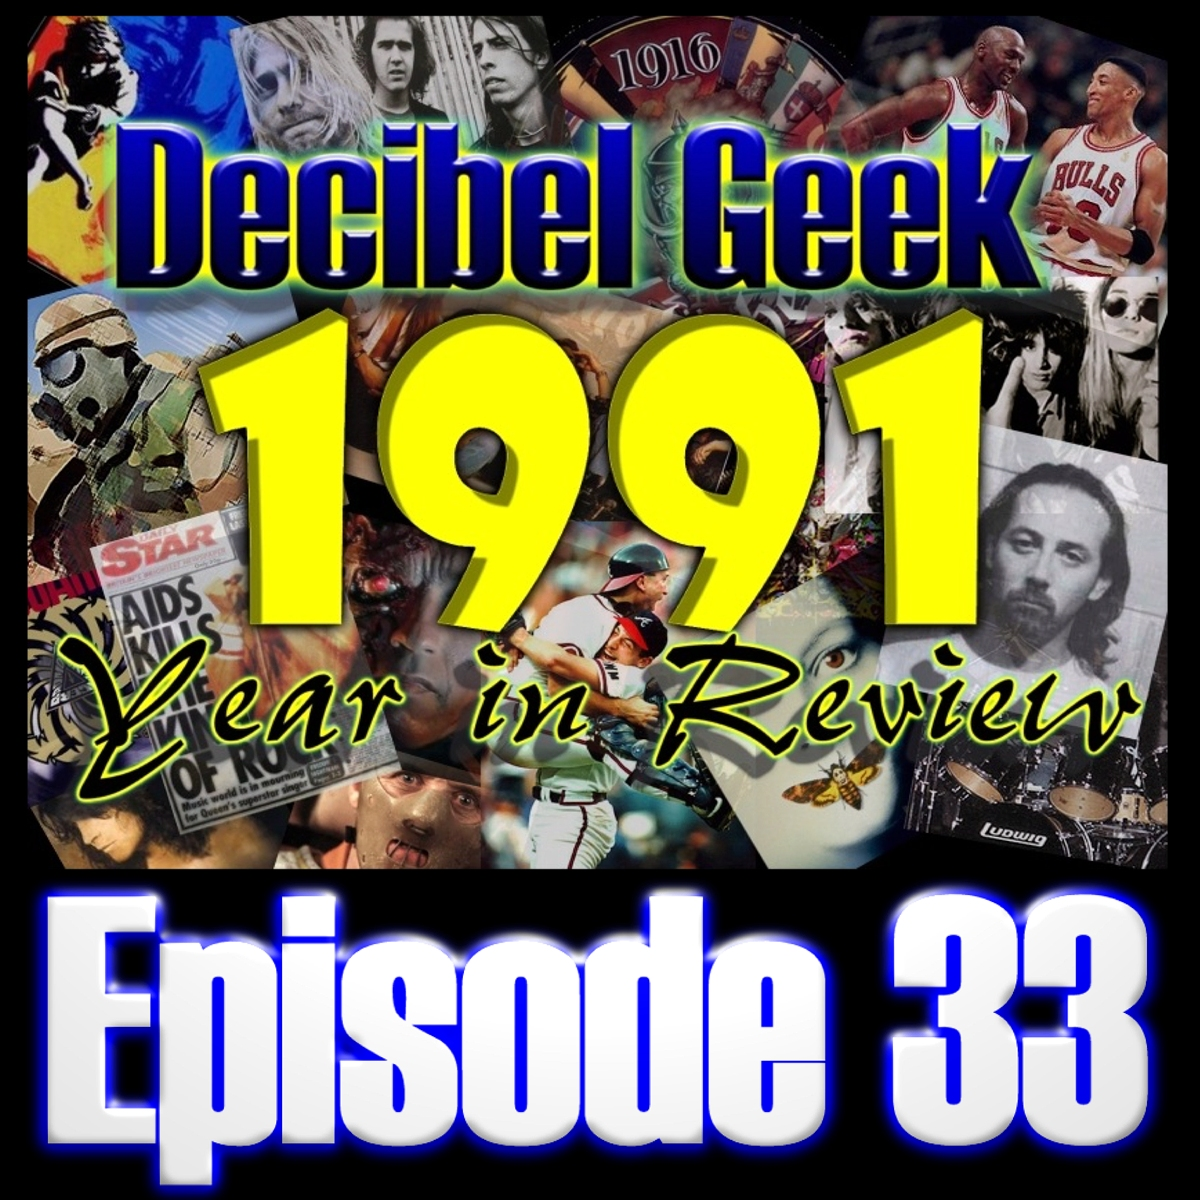 Episode 33 - 1991 Year in Review